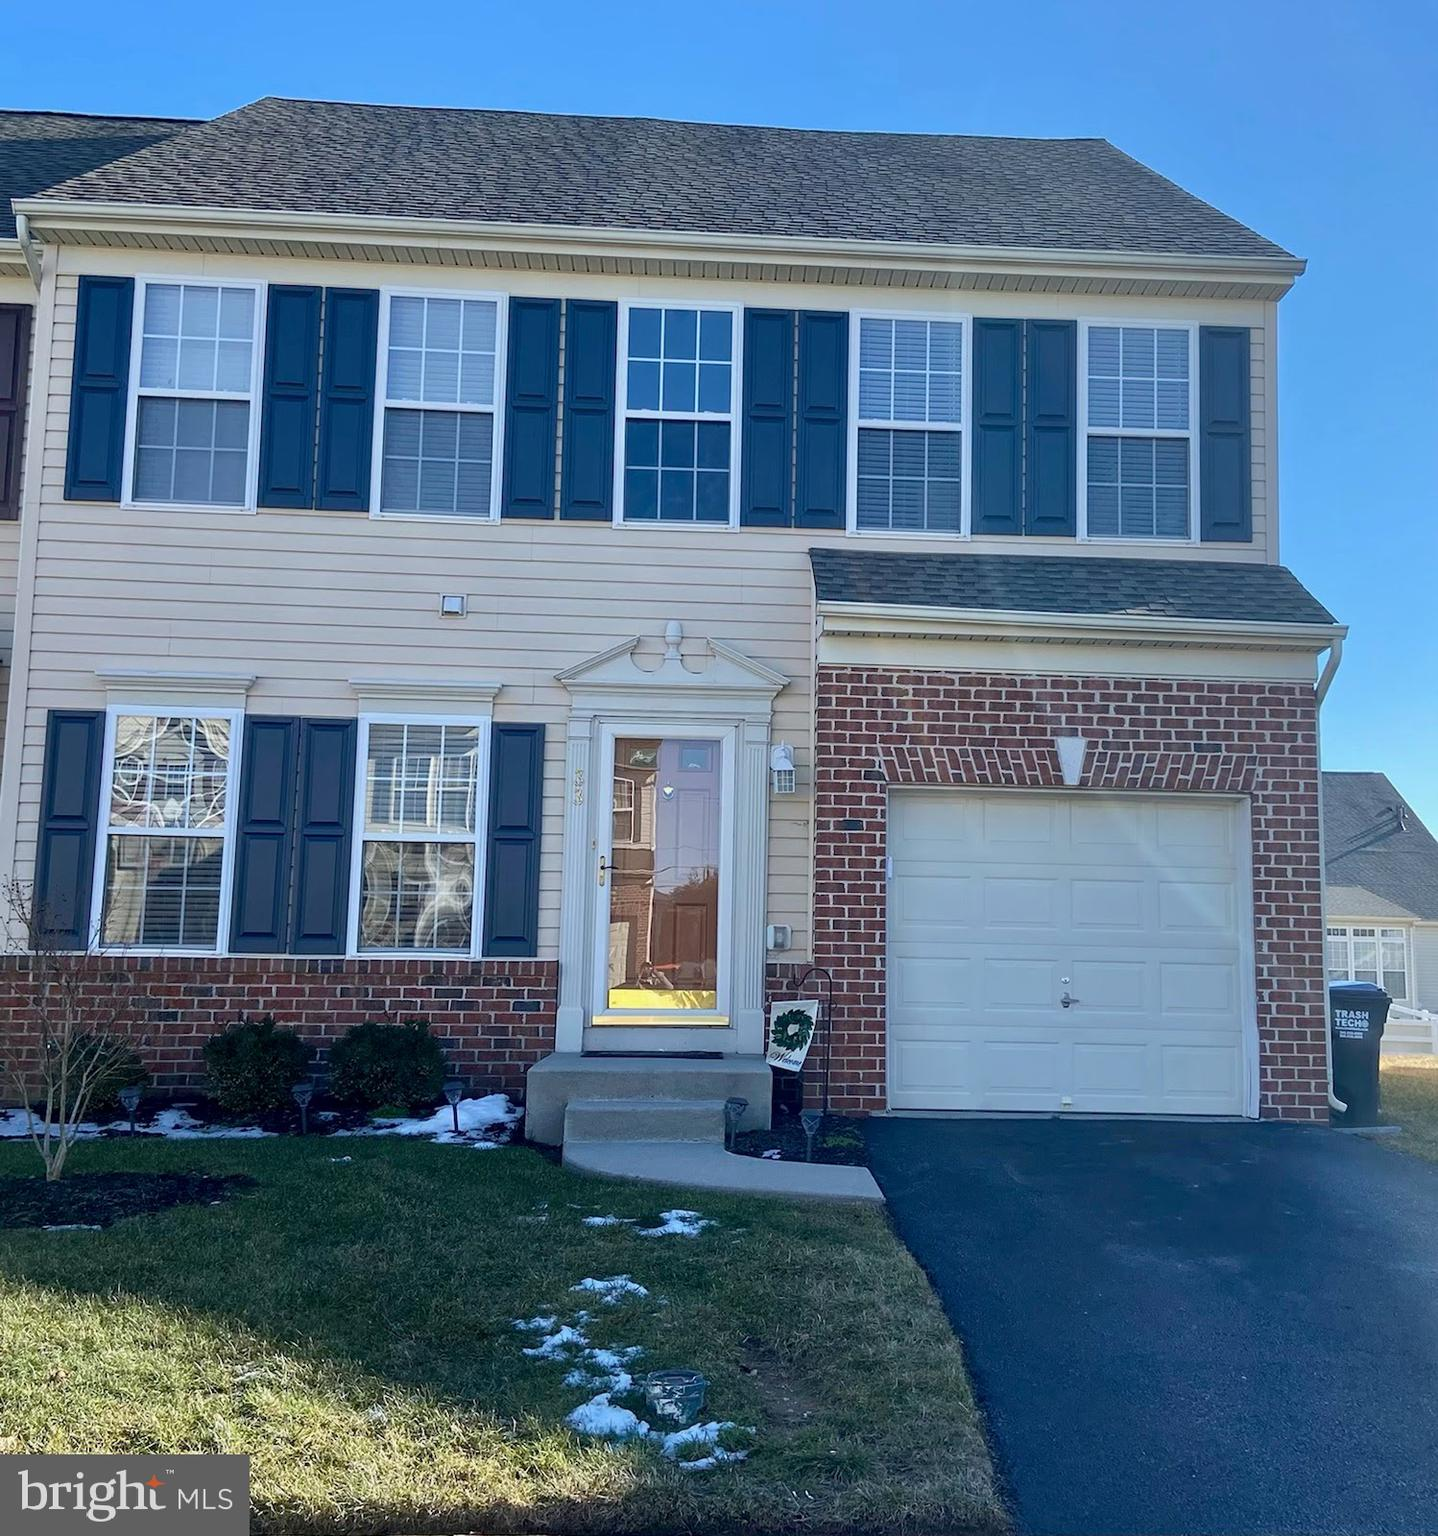 Settle into this well maintained town home in Middletown Crossing, located in the award winning Appqouqinimink School District, Walk to restaurants & shopping. The property is move in ready.  The kitchen features a breakfast nook with plenty of 42 inch cabinets with a tiled back splash and granite countertops. The dining, living room & sun room open to each other. The sun room features a gas fireplace and large windows to allow natural light. The slider exits to the patio with a fenced in yard  with vinyl fencing.  The large main bedroom with spacious bath, is located on the main floor featuring a double vanity.  The second floor features a loft that can be used as an office, library, rec room etc.  Two  large bedrooms have nice closets. The unfinished basement leaves endless possibilities. Open House Cancelled on 2/28.